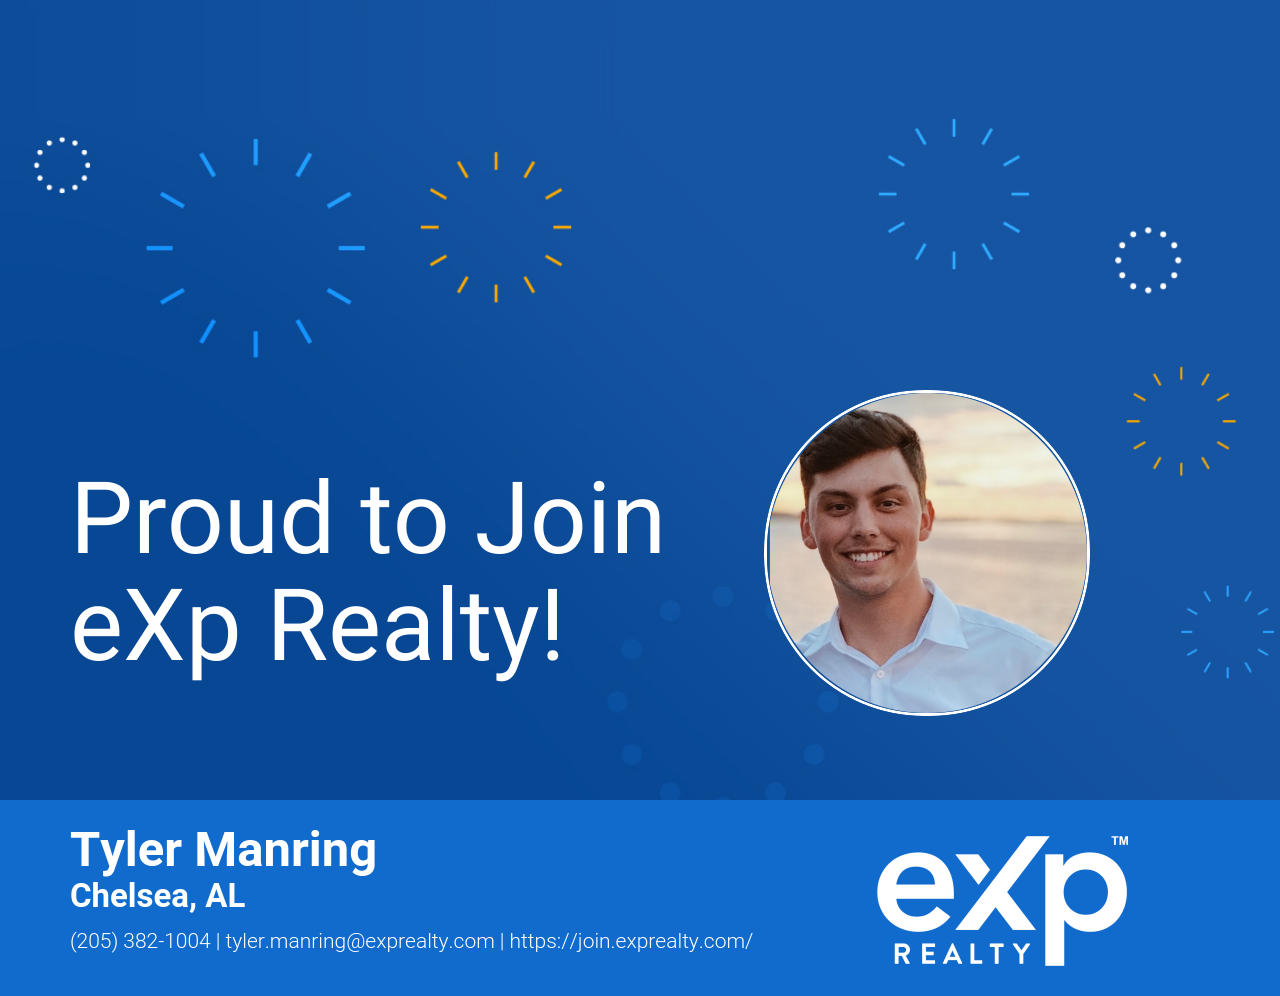 eXp Realty Welcomes Tyler Manring!